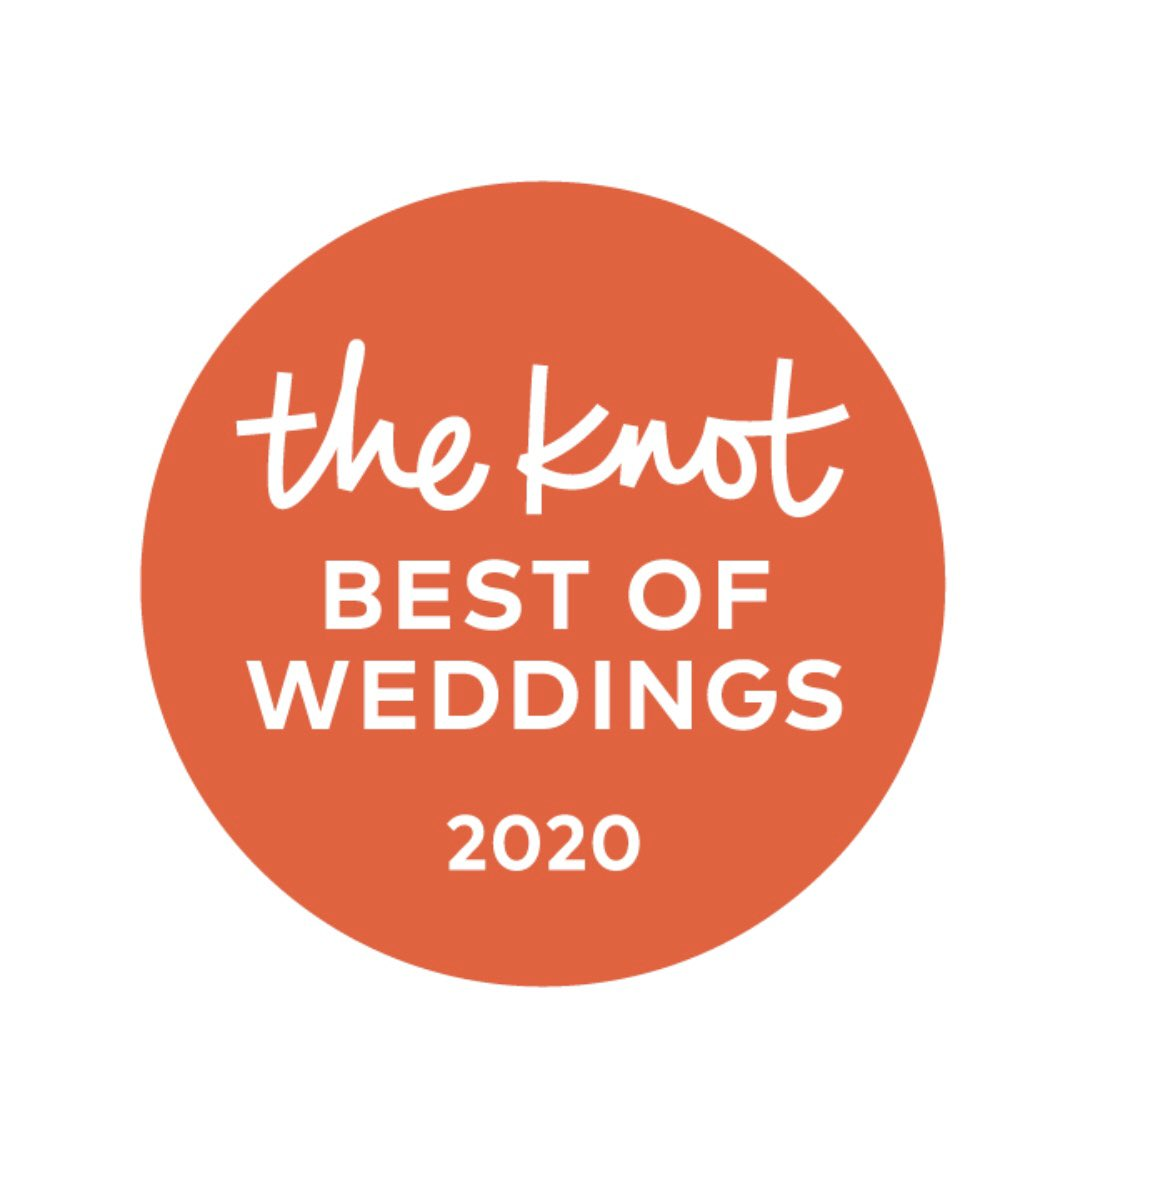 We are so excited to announce that the Flawless Faces by Alicia team has been selected as a winner of @theknot Best of Weddings 2020 for the 8th year in a row!! pic.twitter.com/ChS5Q3WNVJ